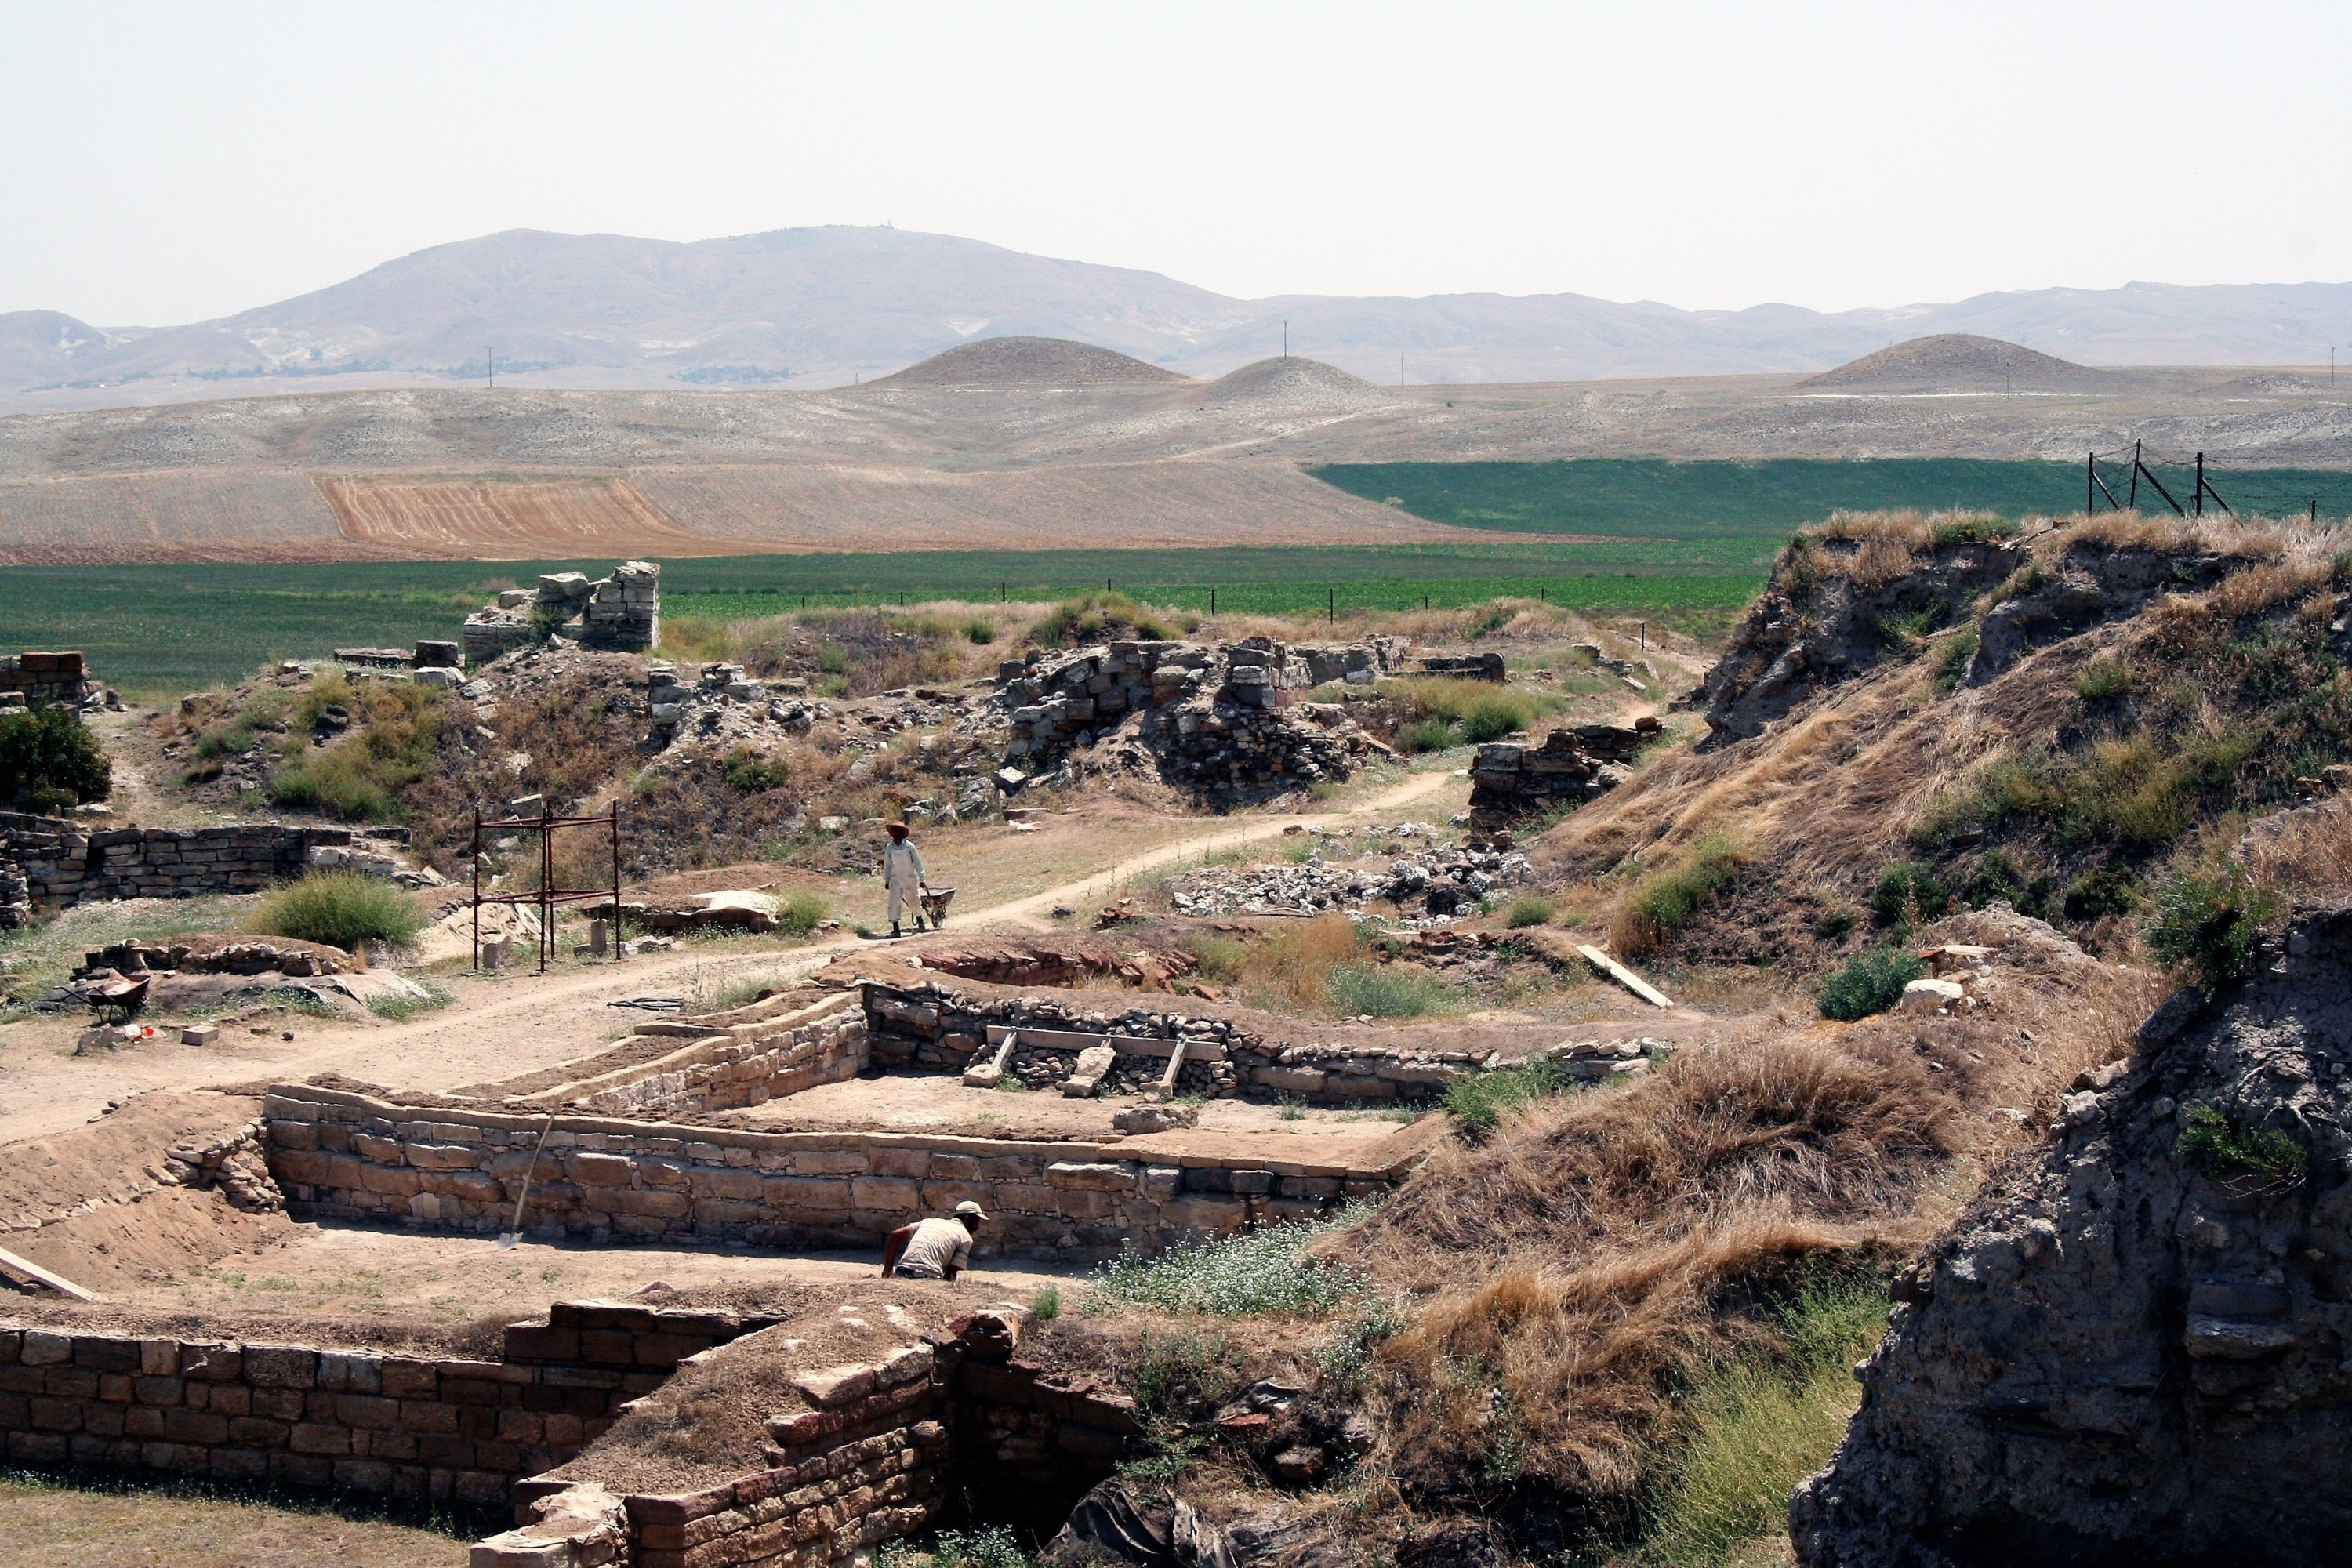 King Midas's tomb at the archaeological site of Gordion. (Shutterstock Photo)